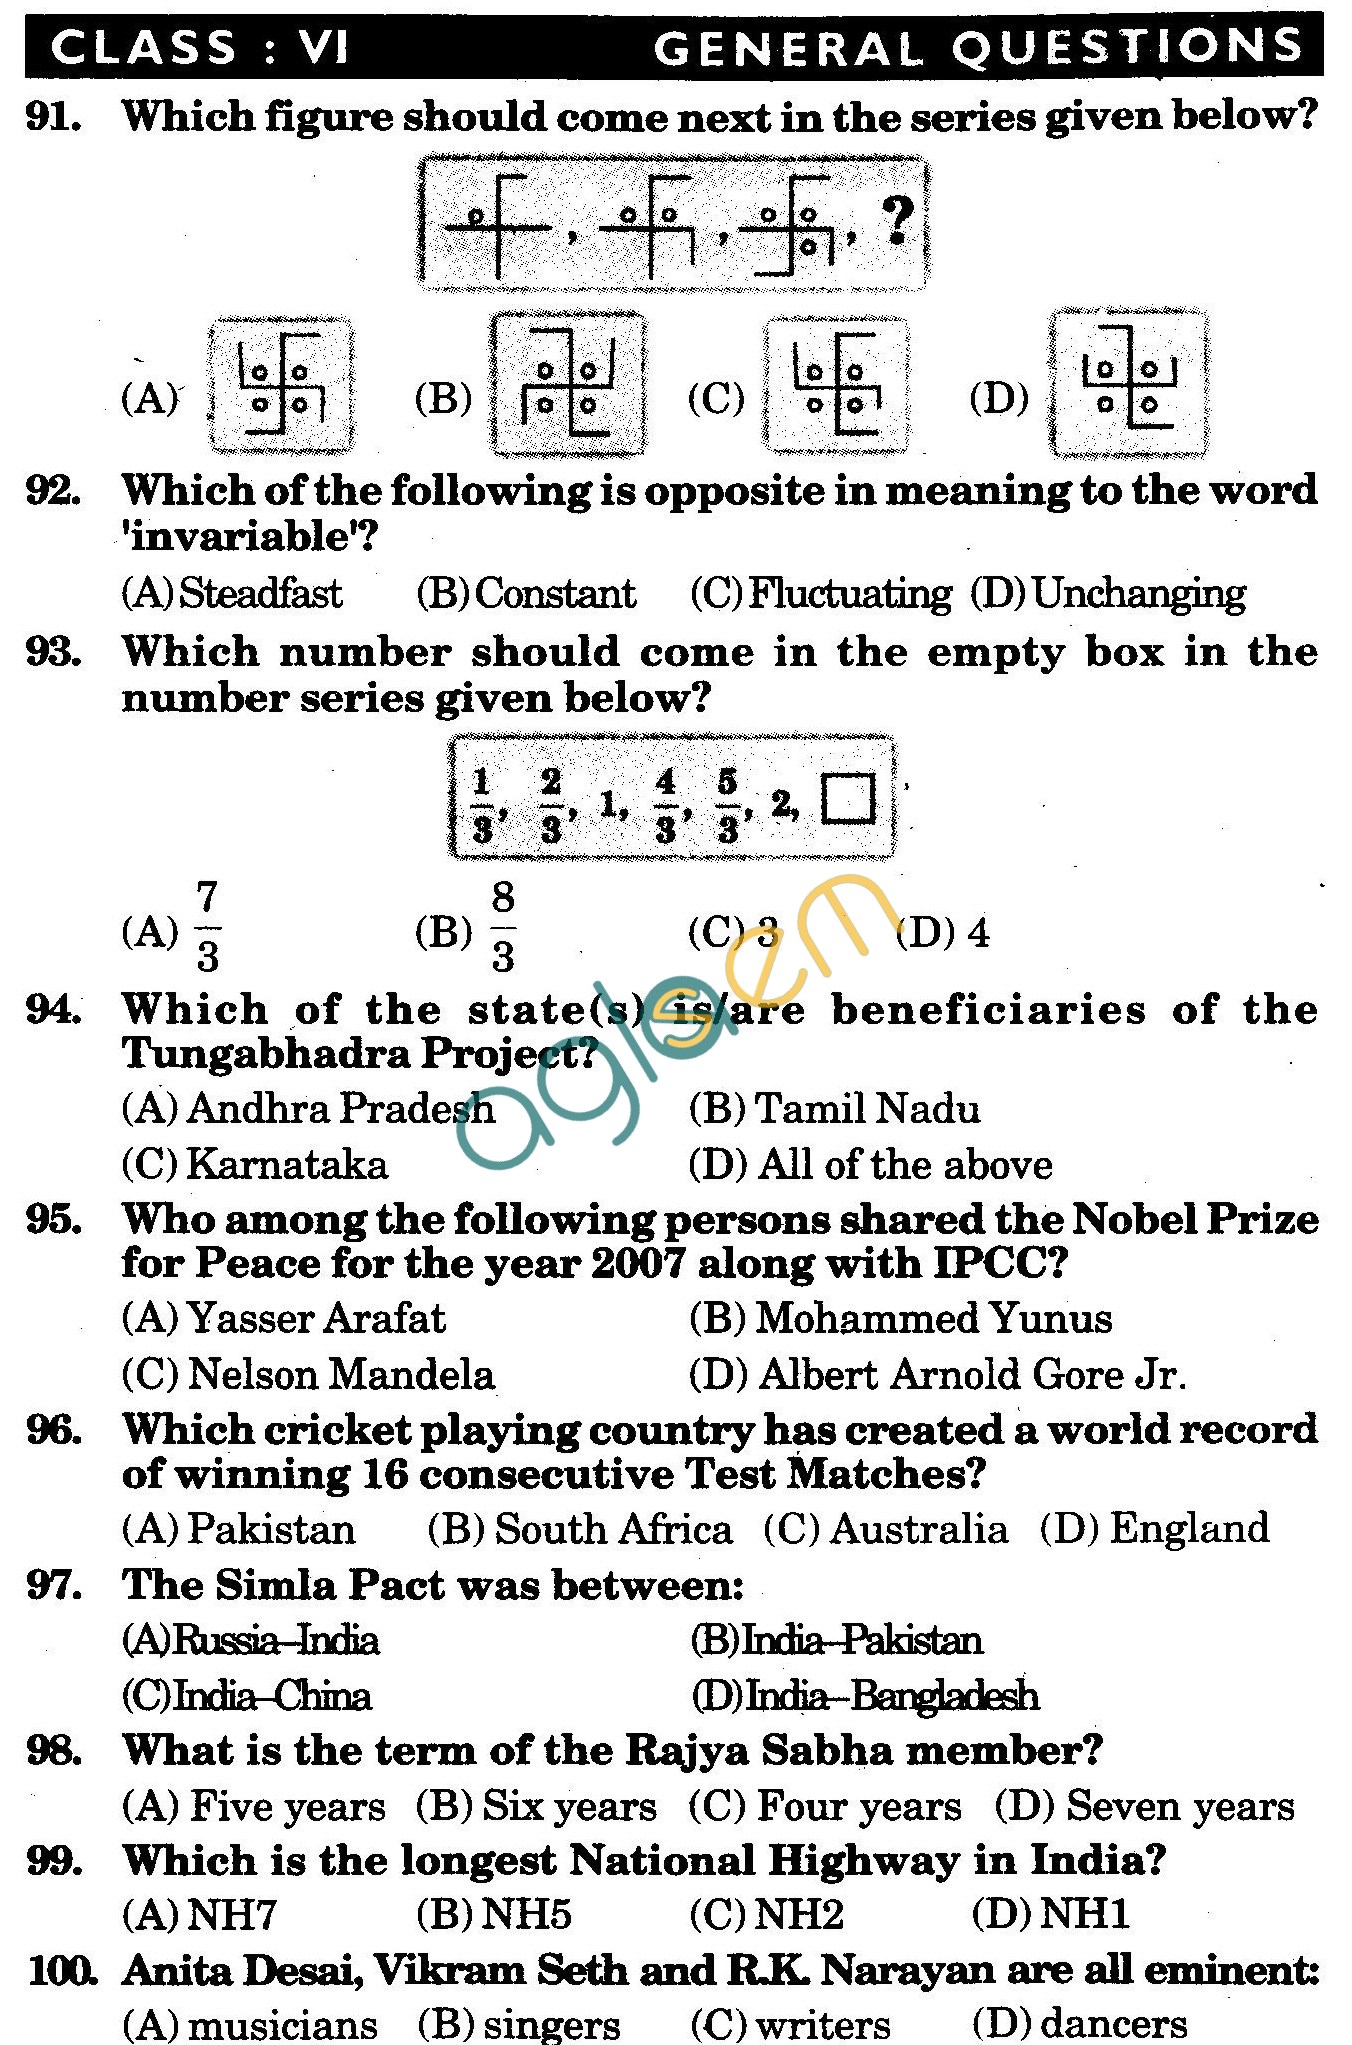 NSTSE 2009 Class VI Question Paper with Answers - General Knowledge